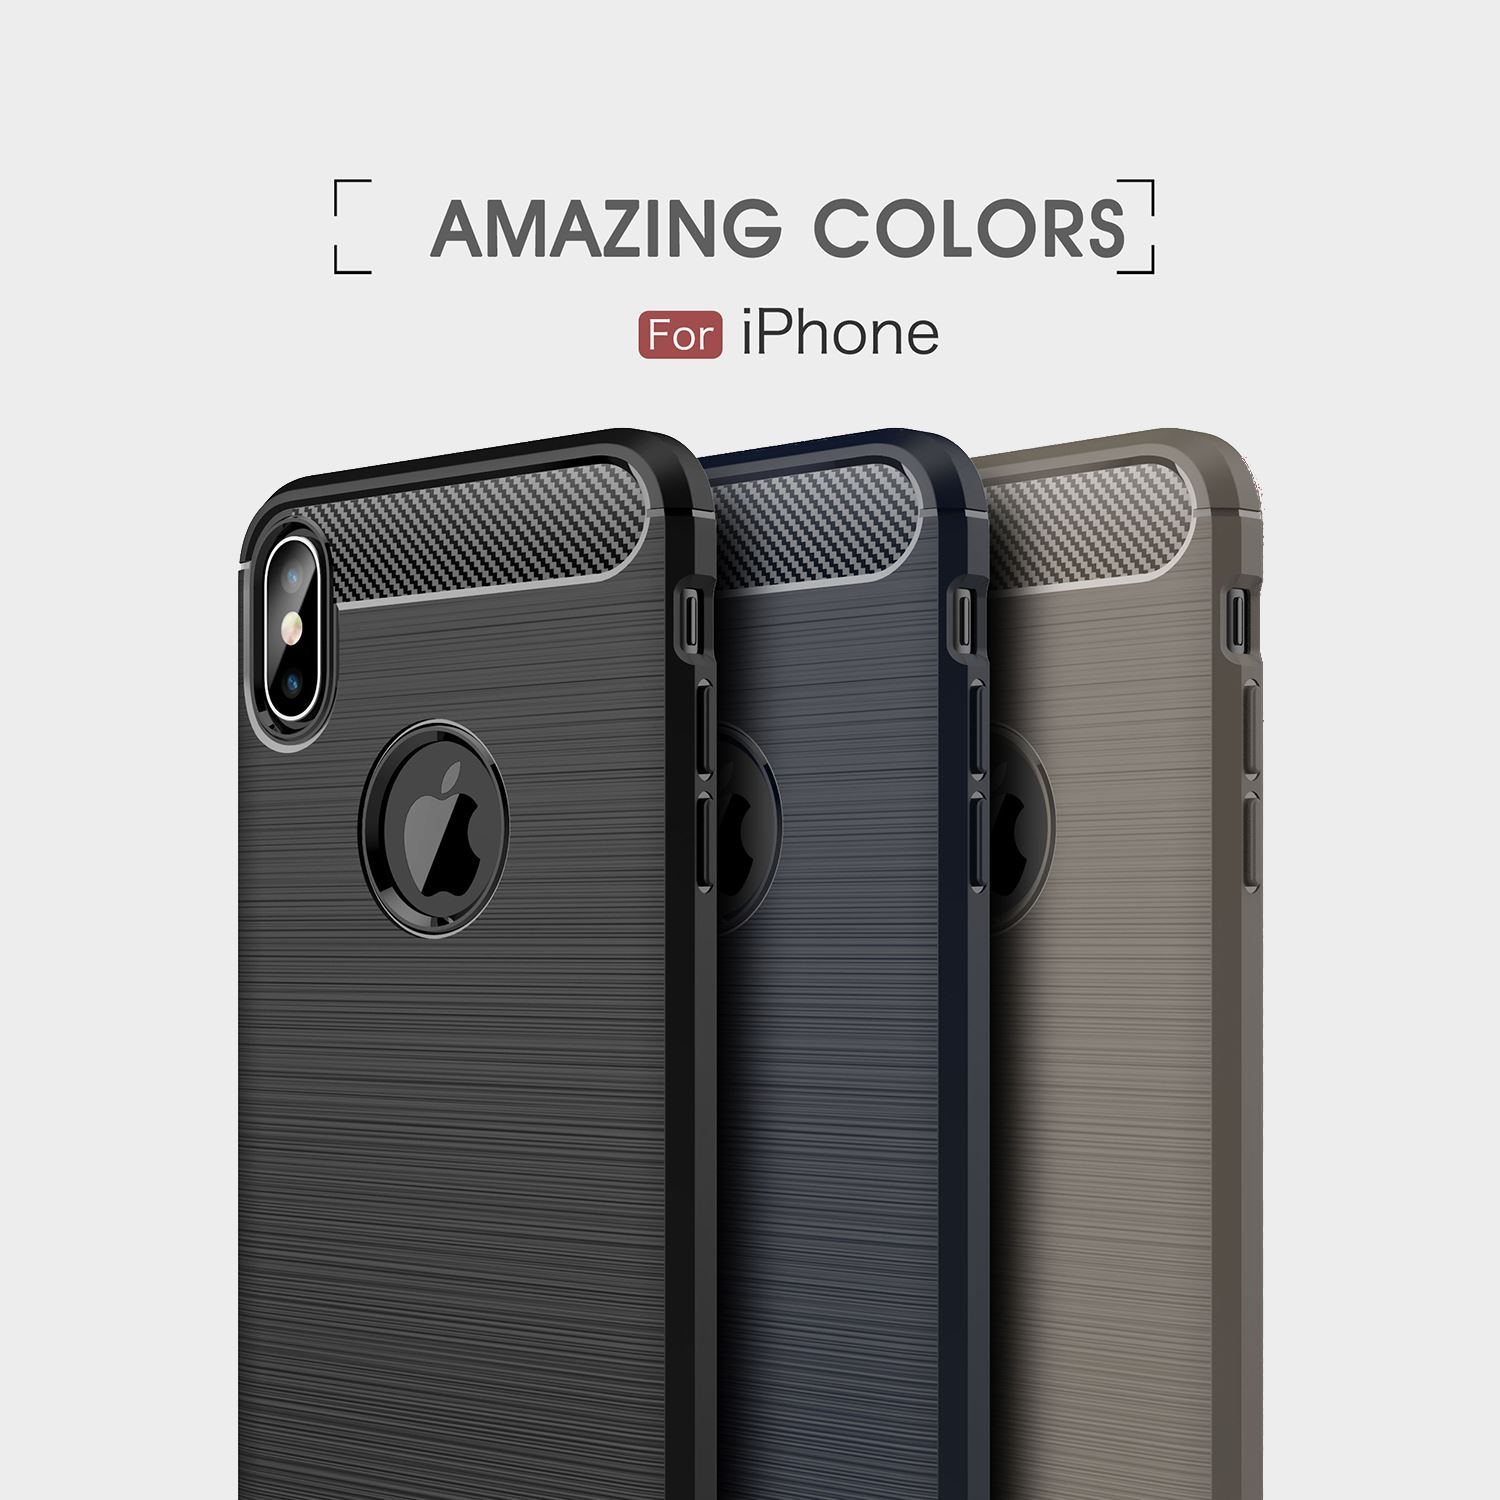 miniature 35 - For Apple iPhone XR Xs Max X 8 7 Plus 6 5 Se 2020 Case Cover New Phone Proof